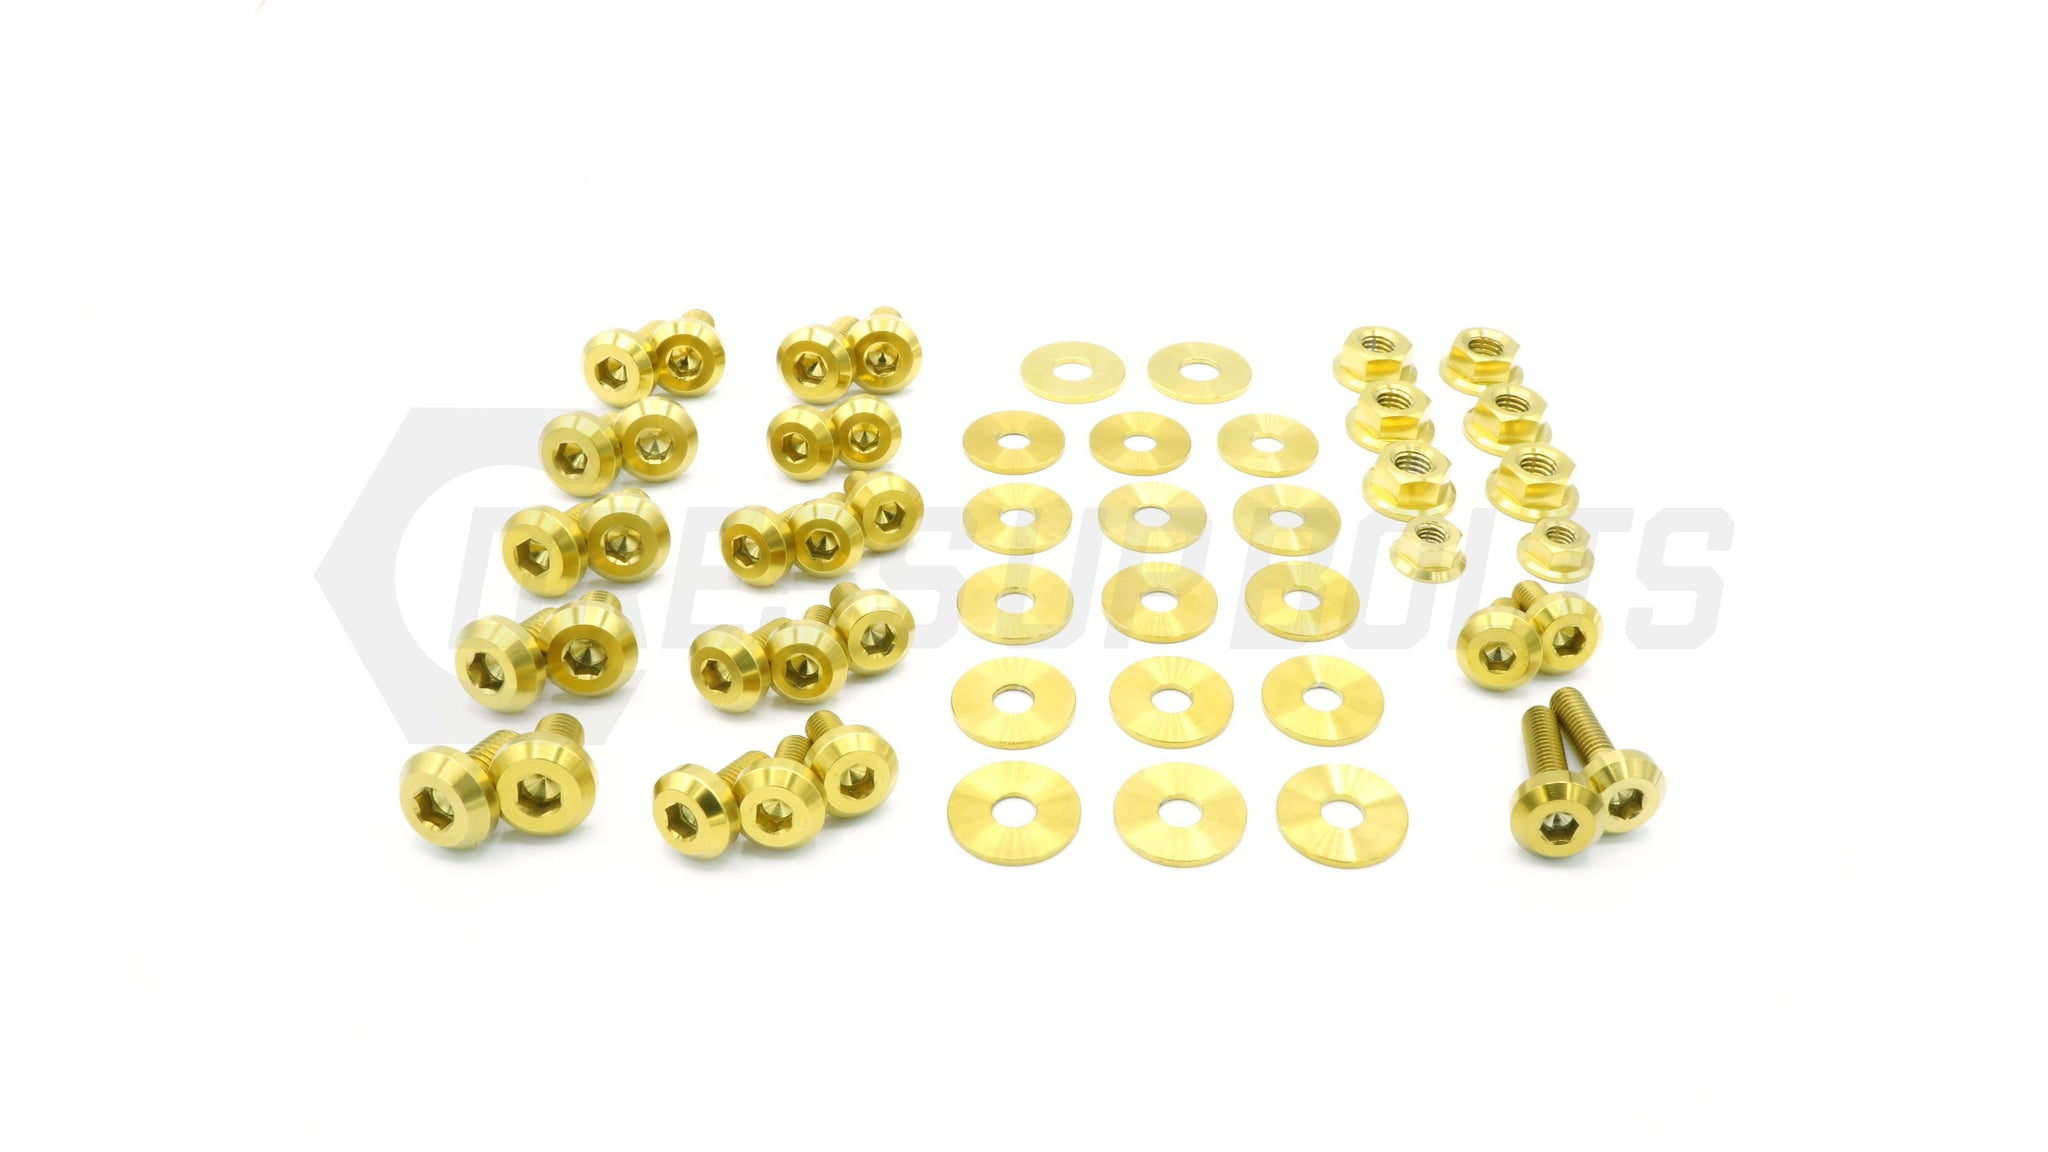 Subaru WRX and STi (2004-2005) Titanium Dress Up Bolts Engine Bay Kit - DressUpBolts.com